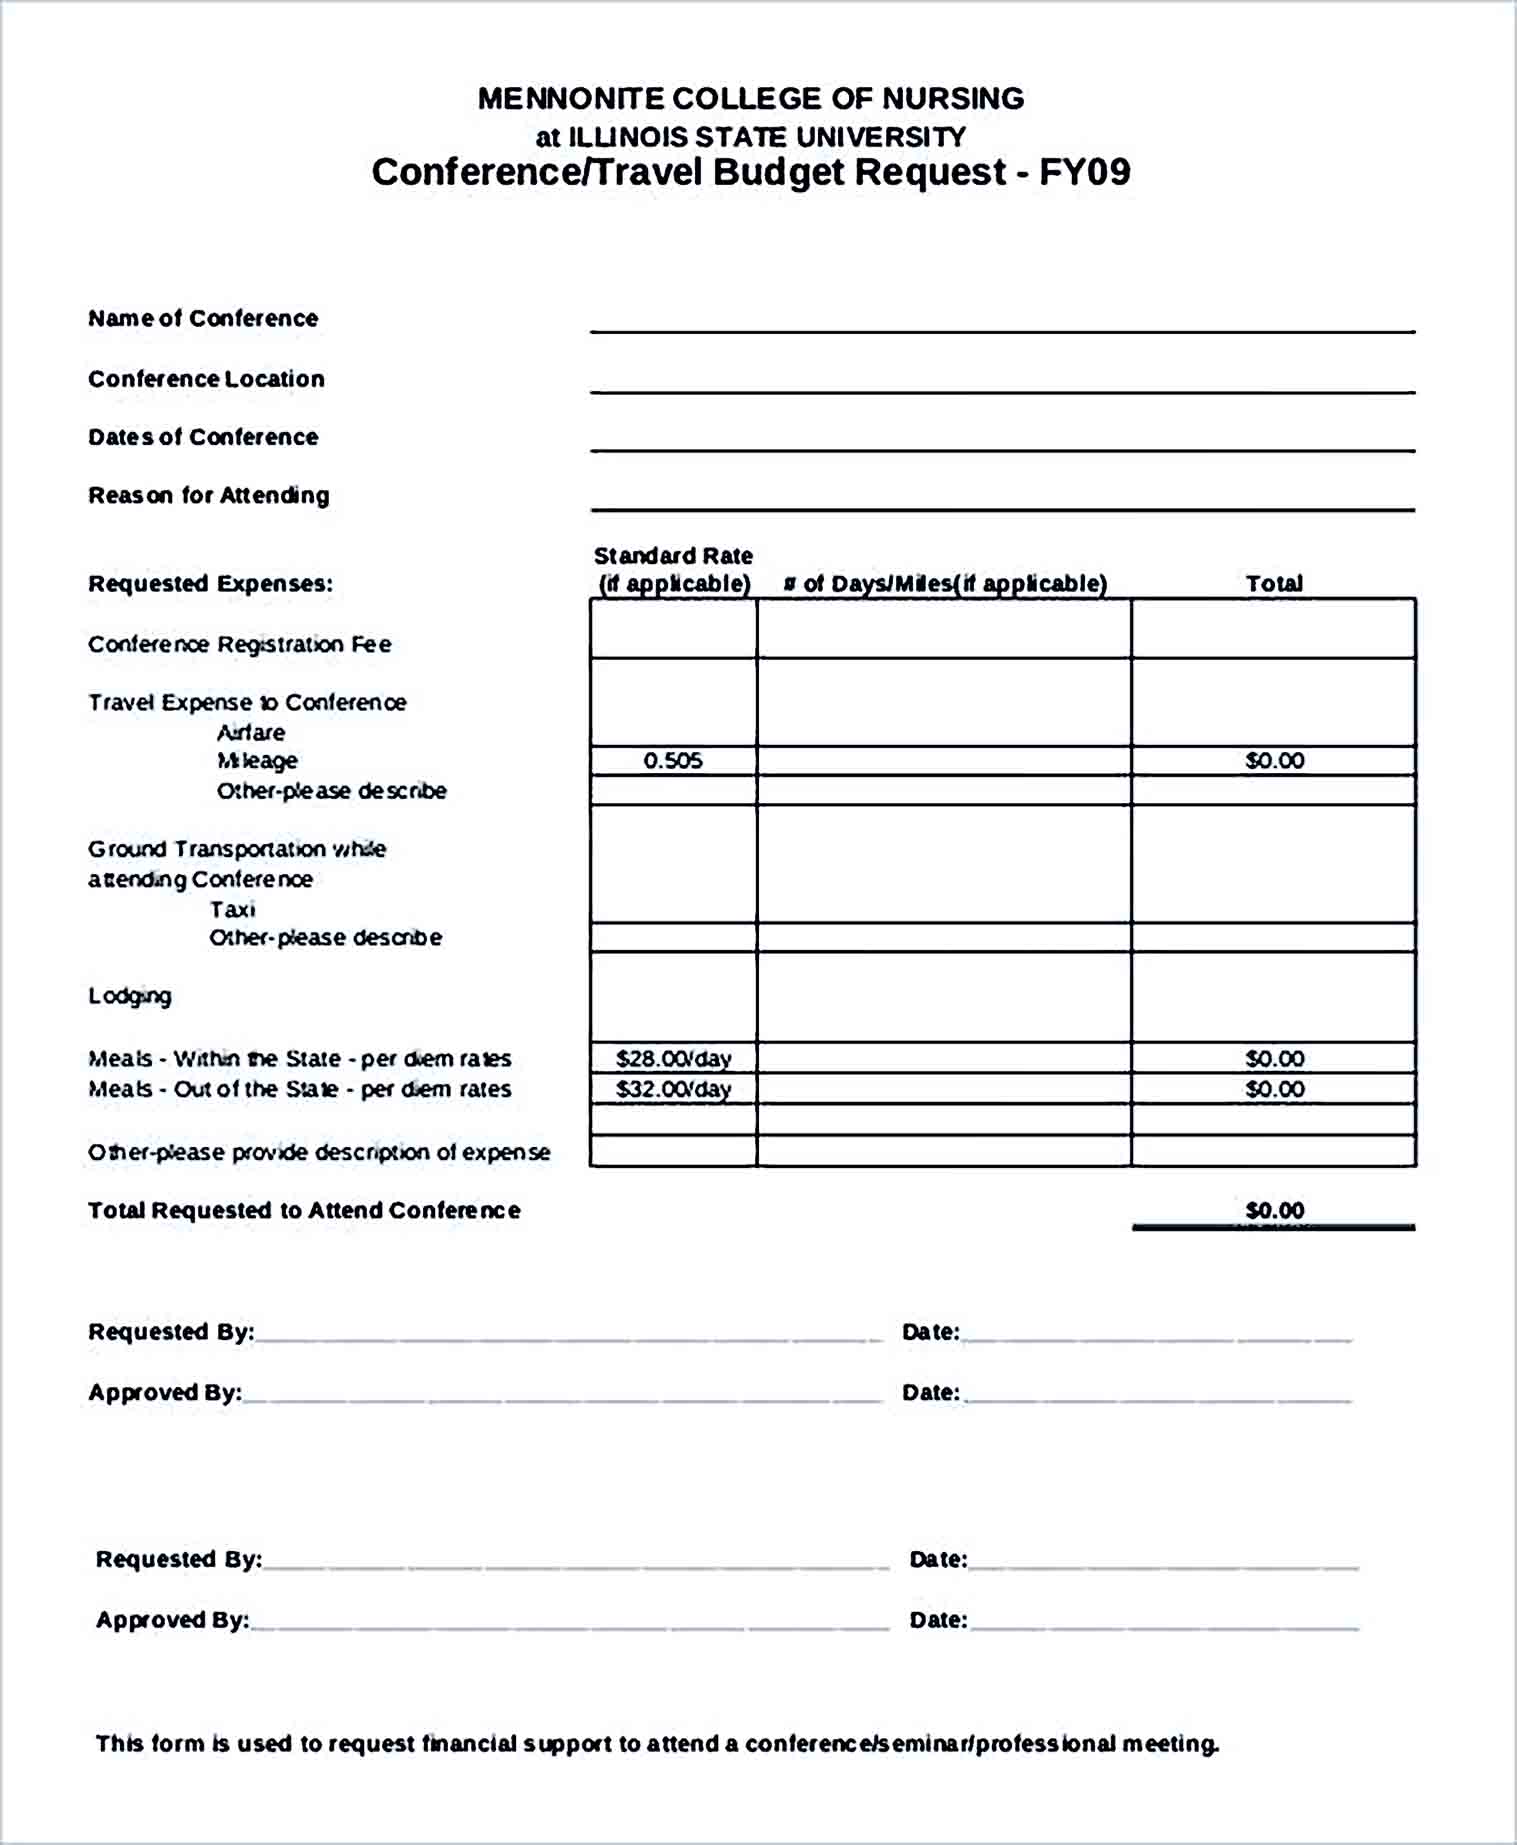 Sample Conference Travel Budget Request